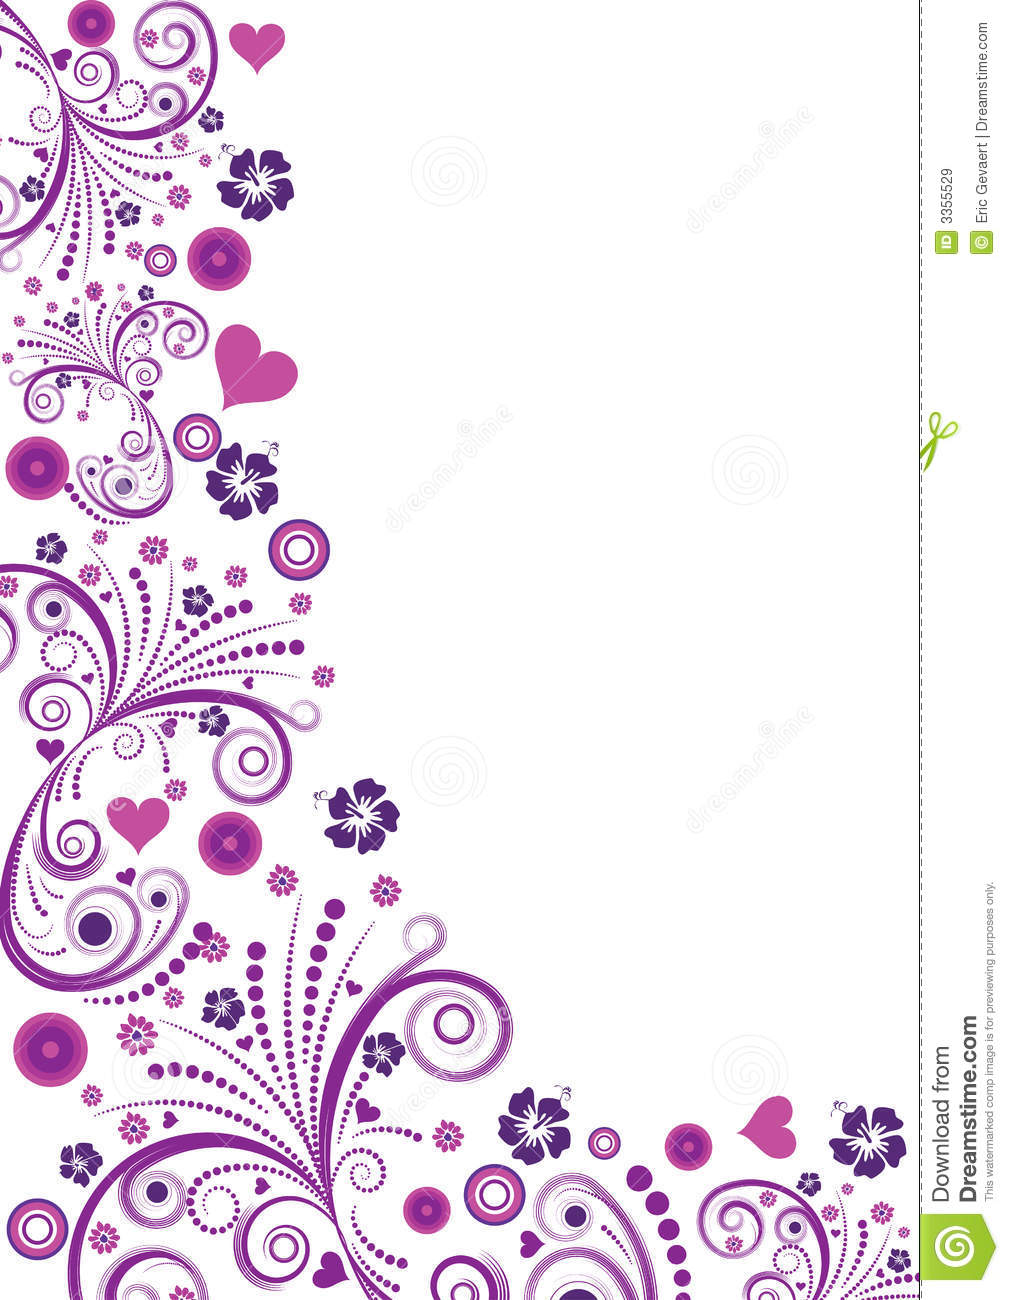 Royalty Free Stock Images  Vector floral border designVector Floral Border